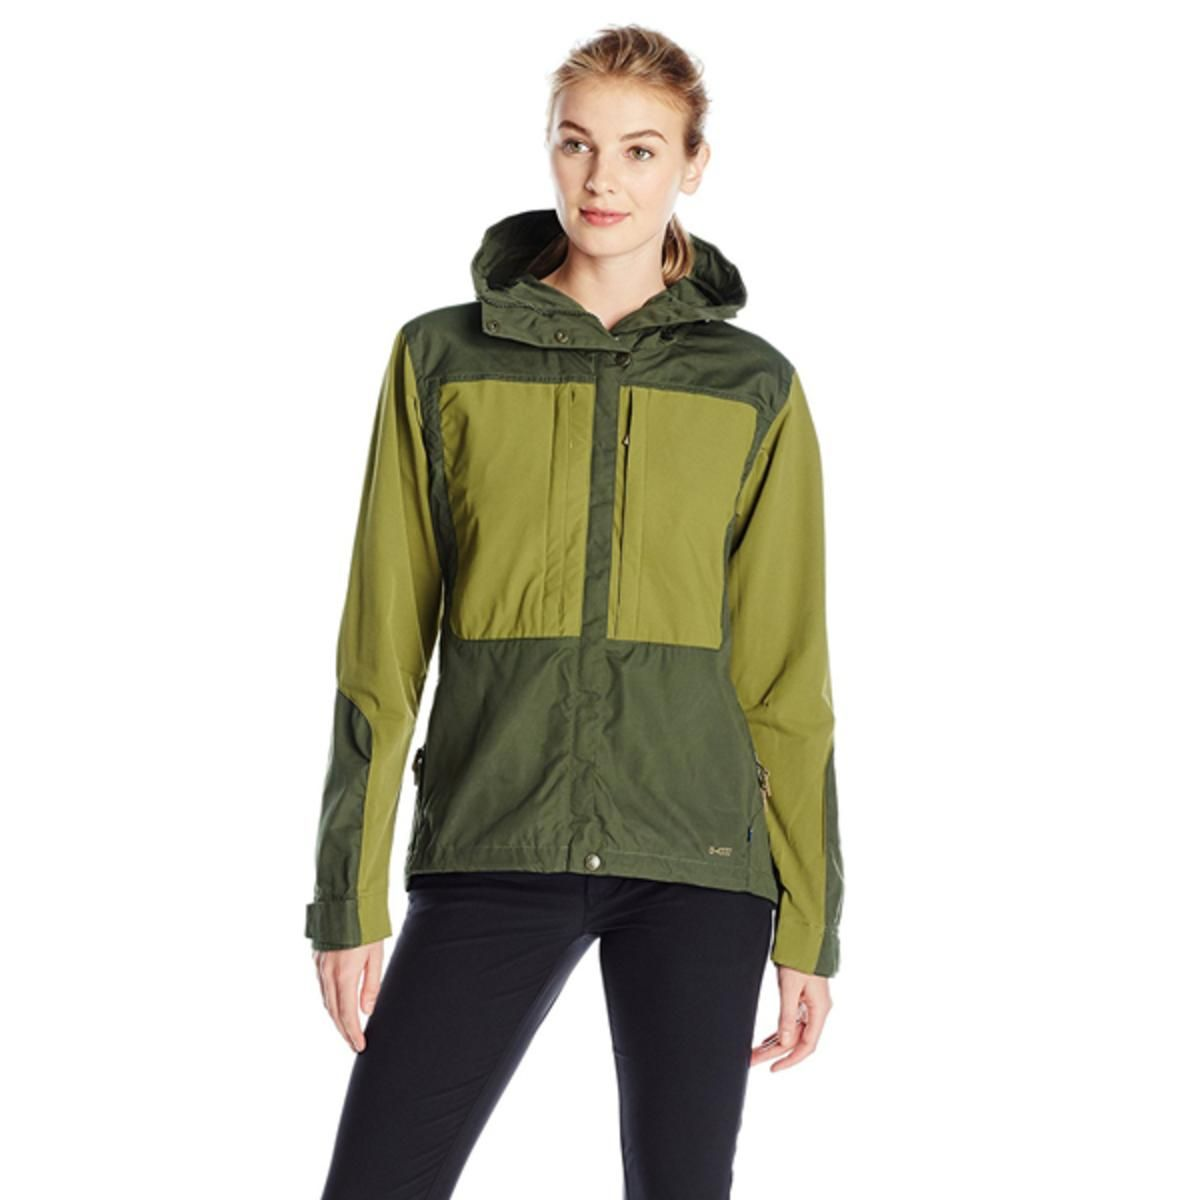 5c499811 FjallRaven Women's Keb Jacket - Olive - The Warming Store